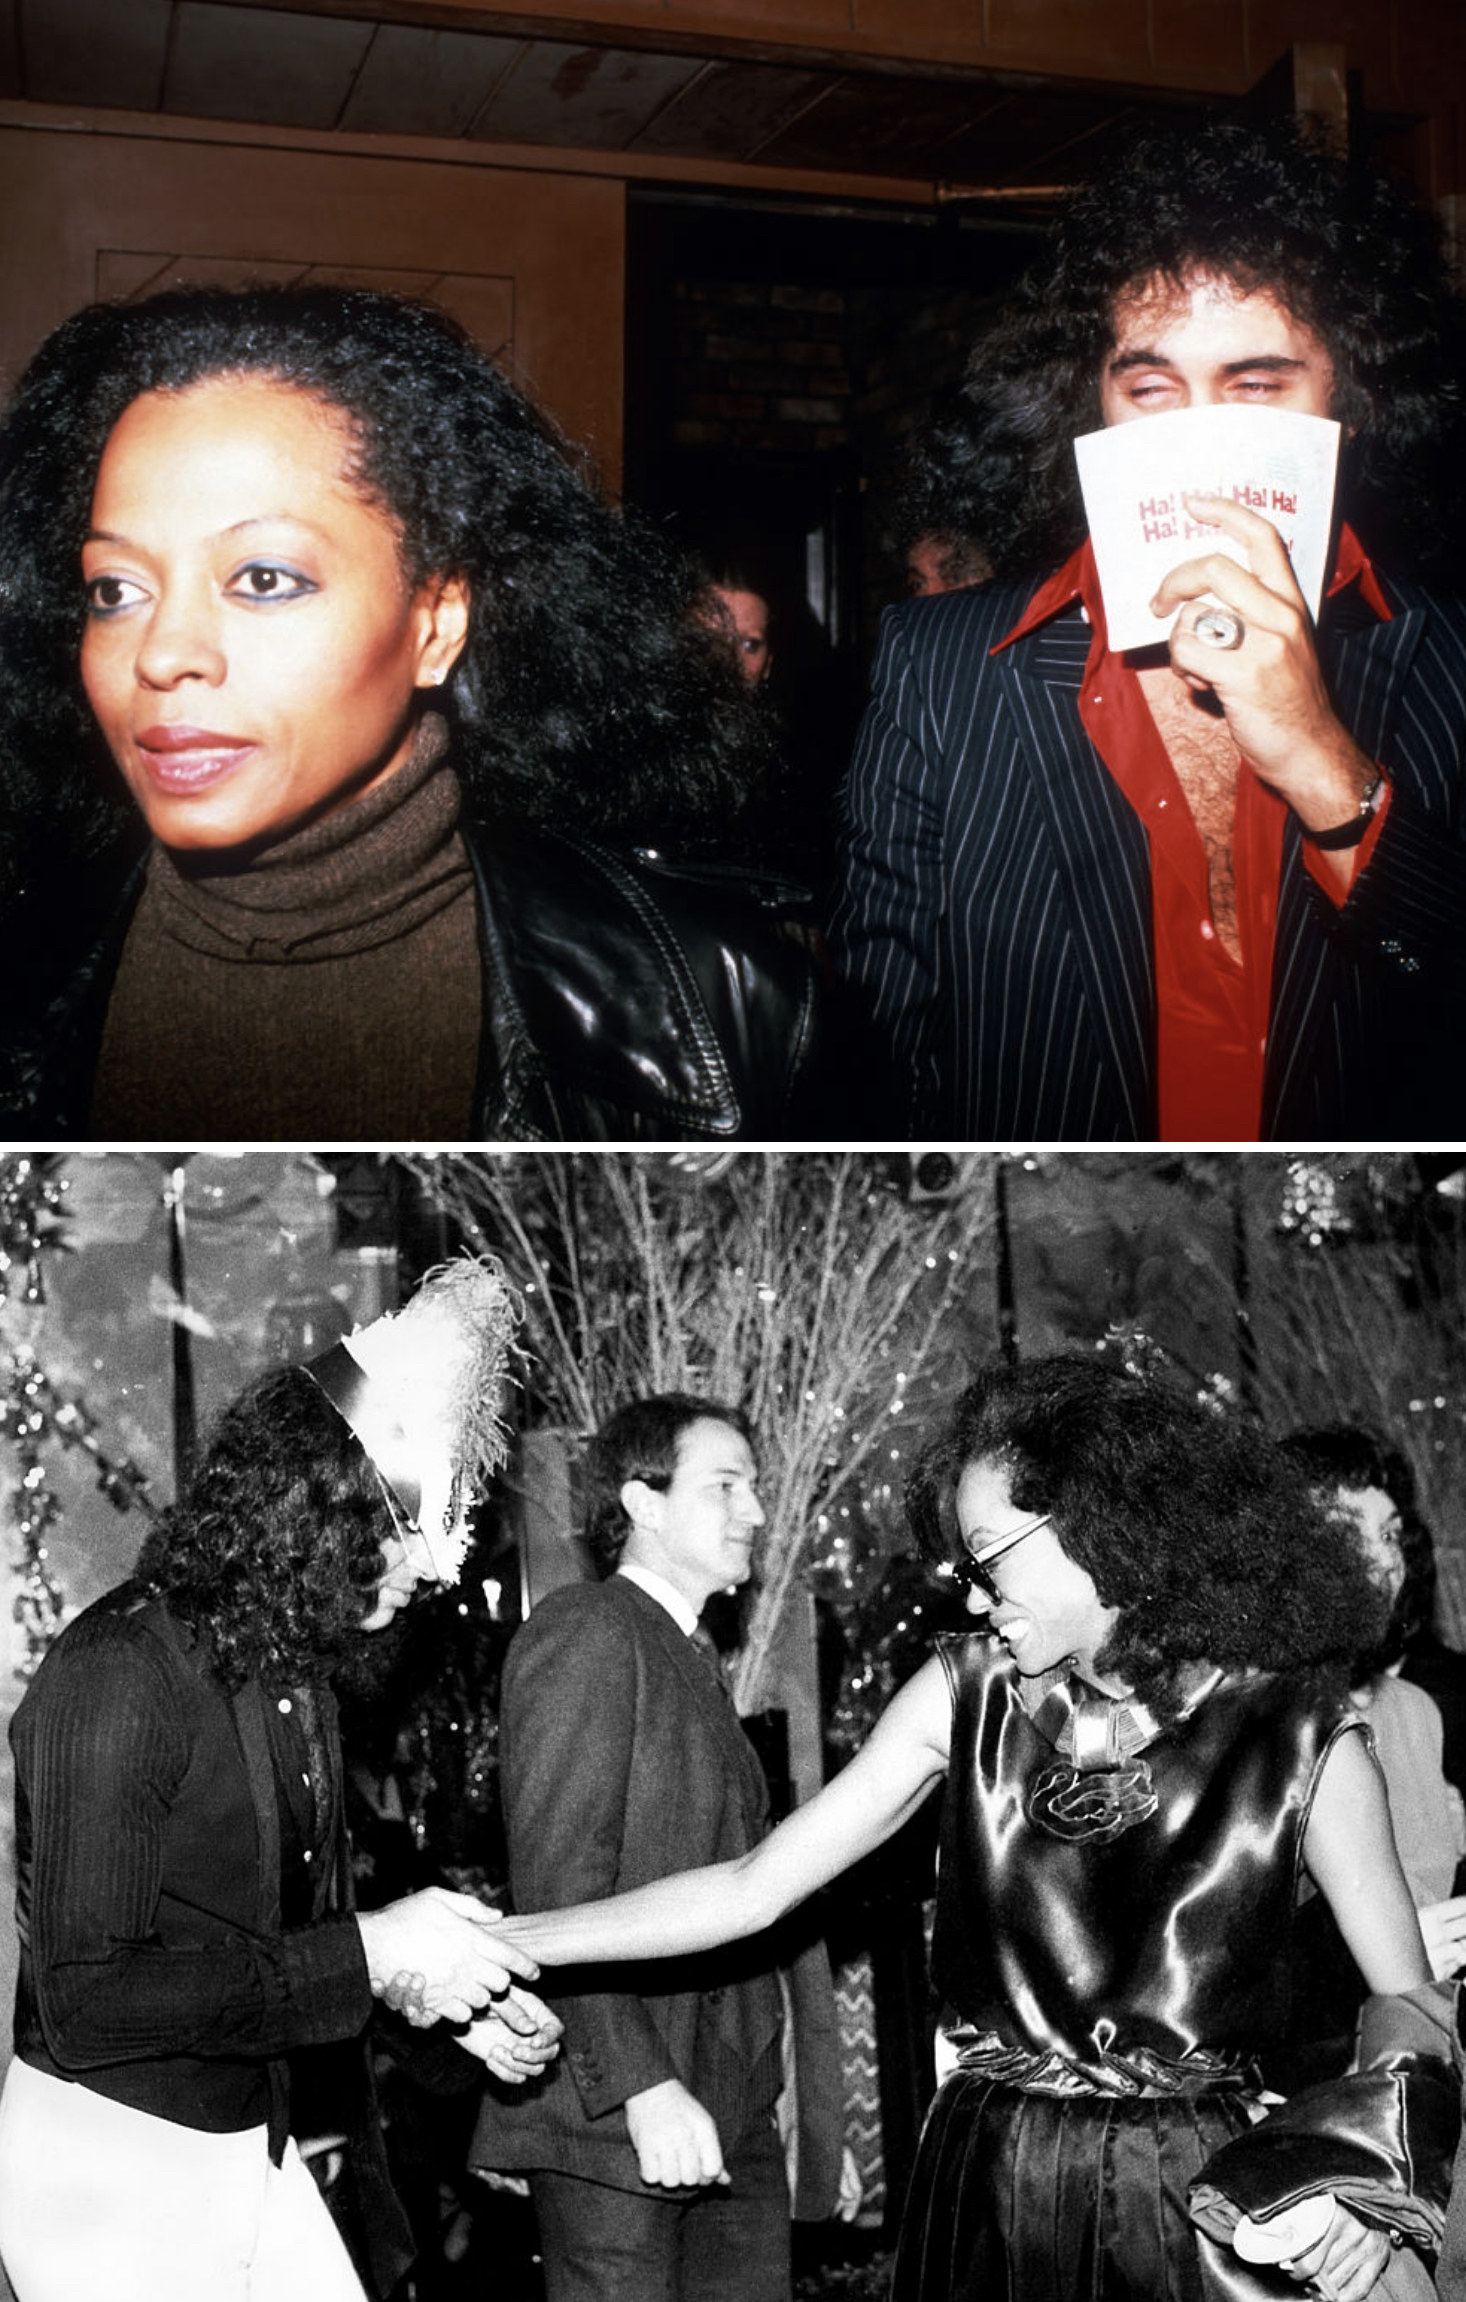 Ross and Simmons at an event in New York City in 1979; Ross and Simmons dancing at Regine's gala in 1981